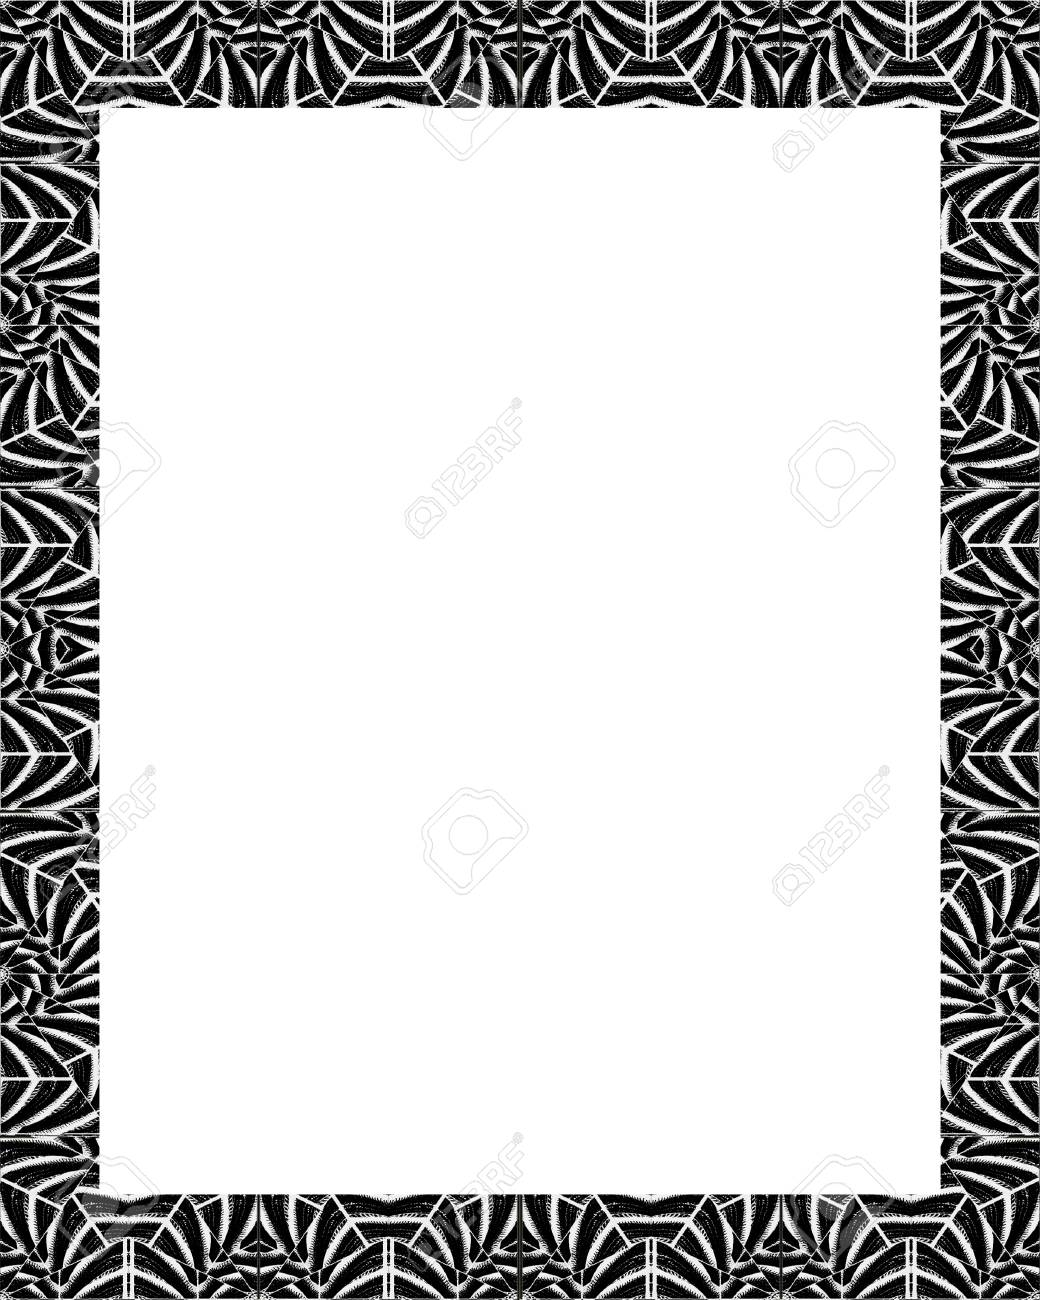 White Frame Background With Decorated Tribal Design Borders. Stock ...